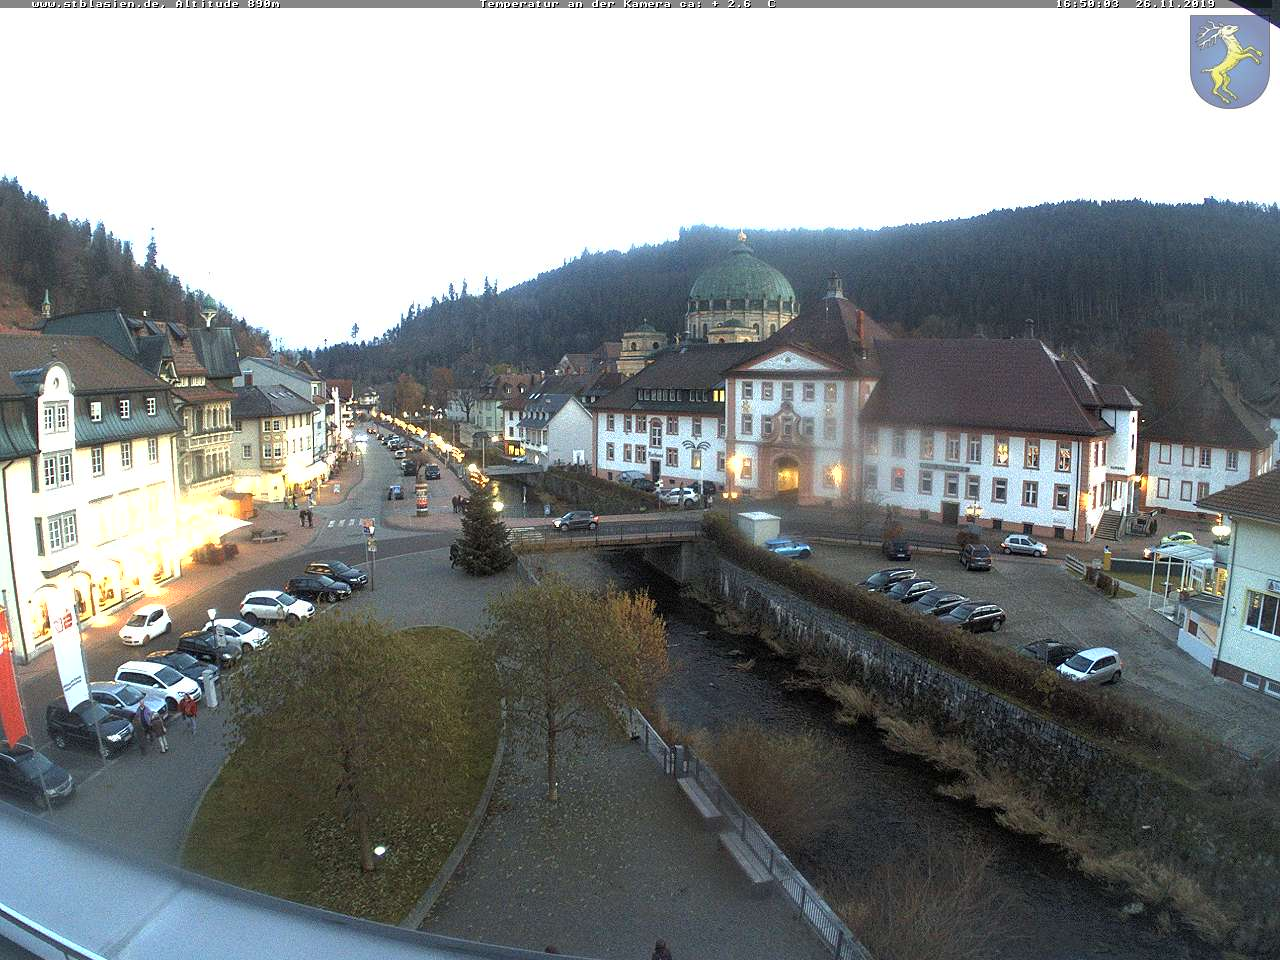 http://webcam.land-in-sicht.com/stblasien/webcam.jpg